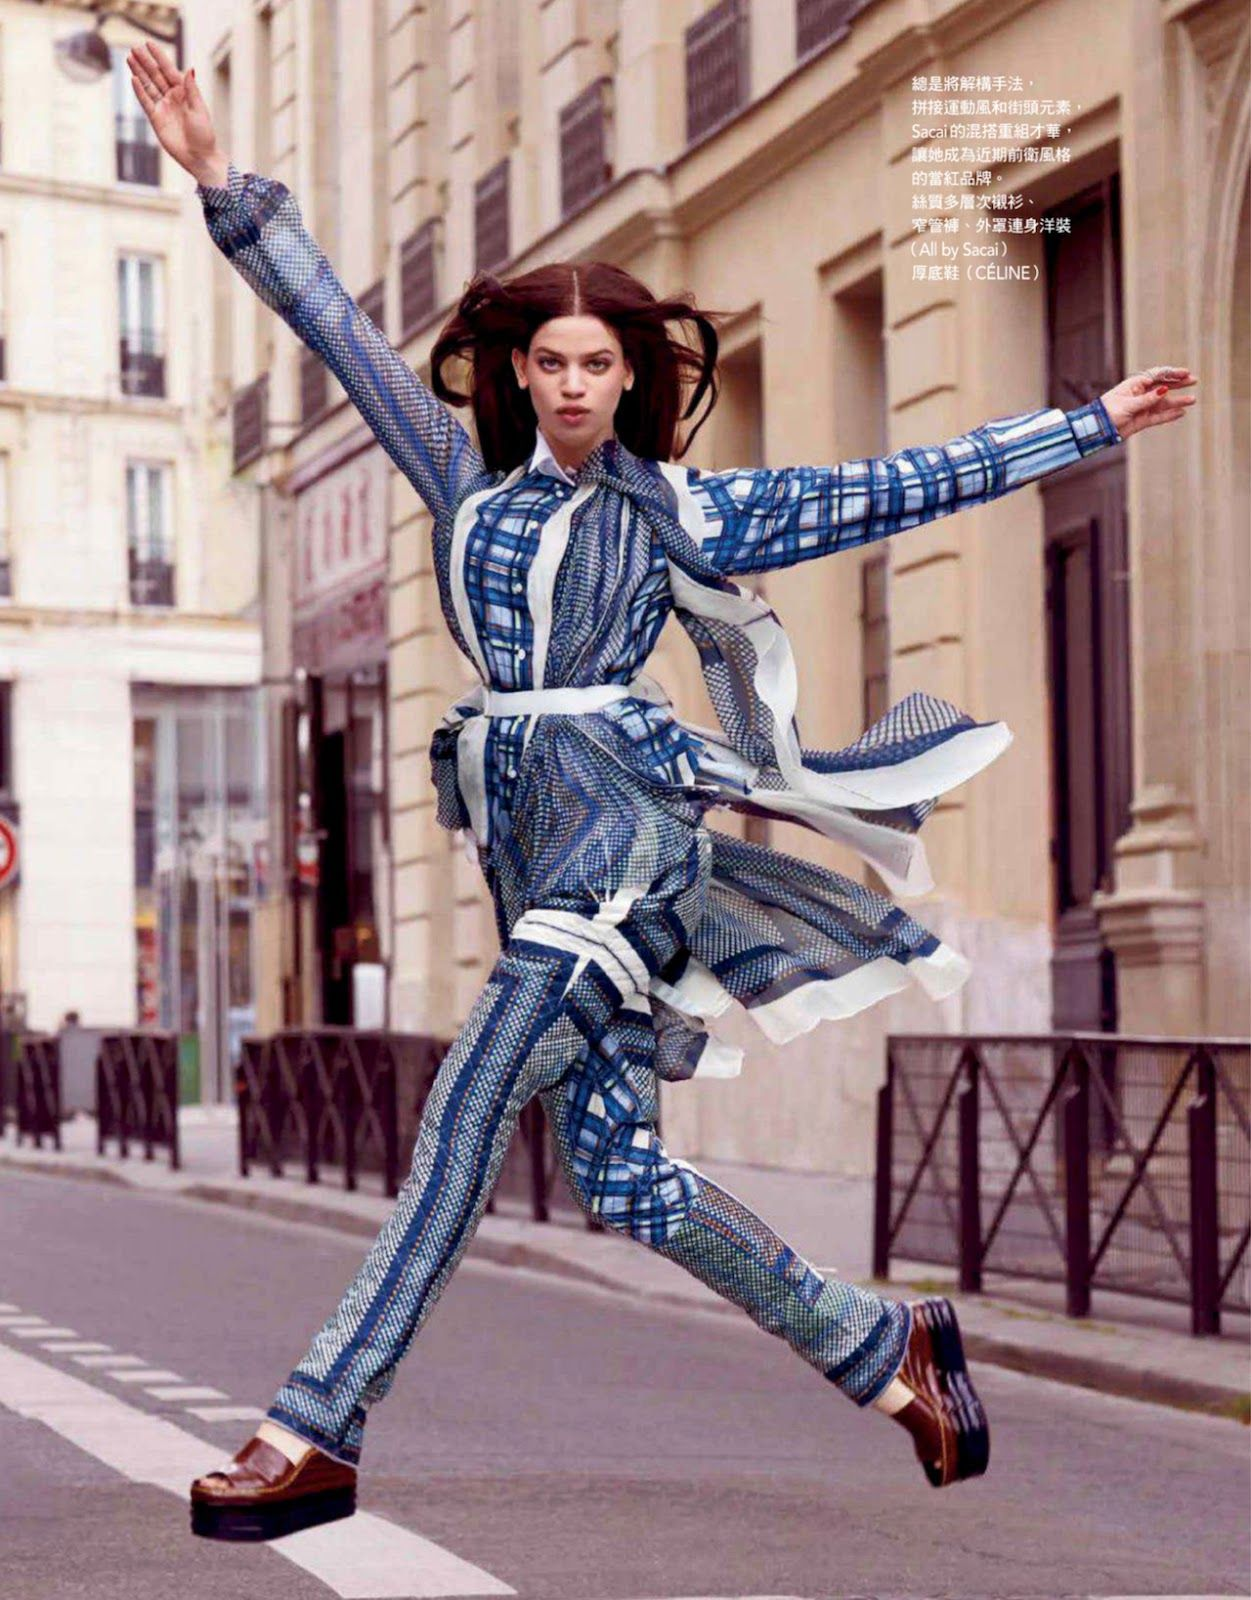 visual optimism; fashion editorials, shows, campaigns & more!: romance in paris: lily mcmenamy by leslie kee for vogue taiwan august 2014